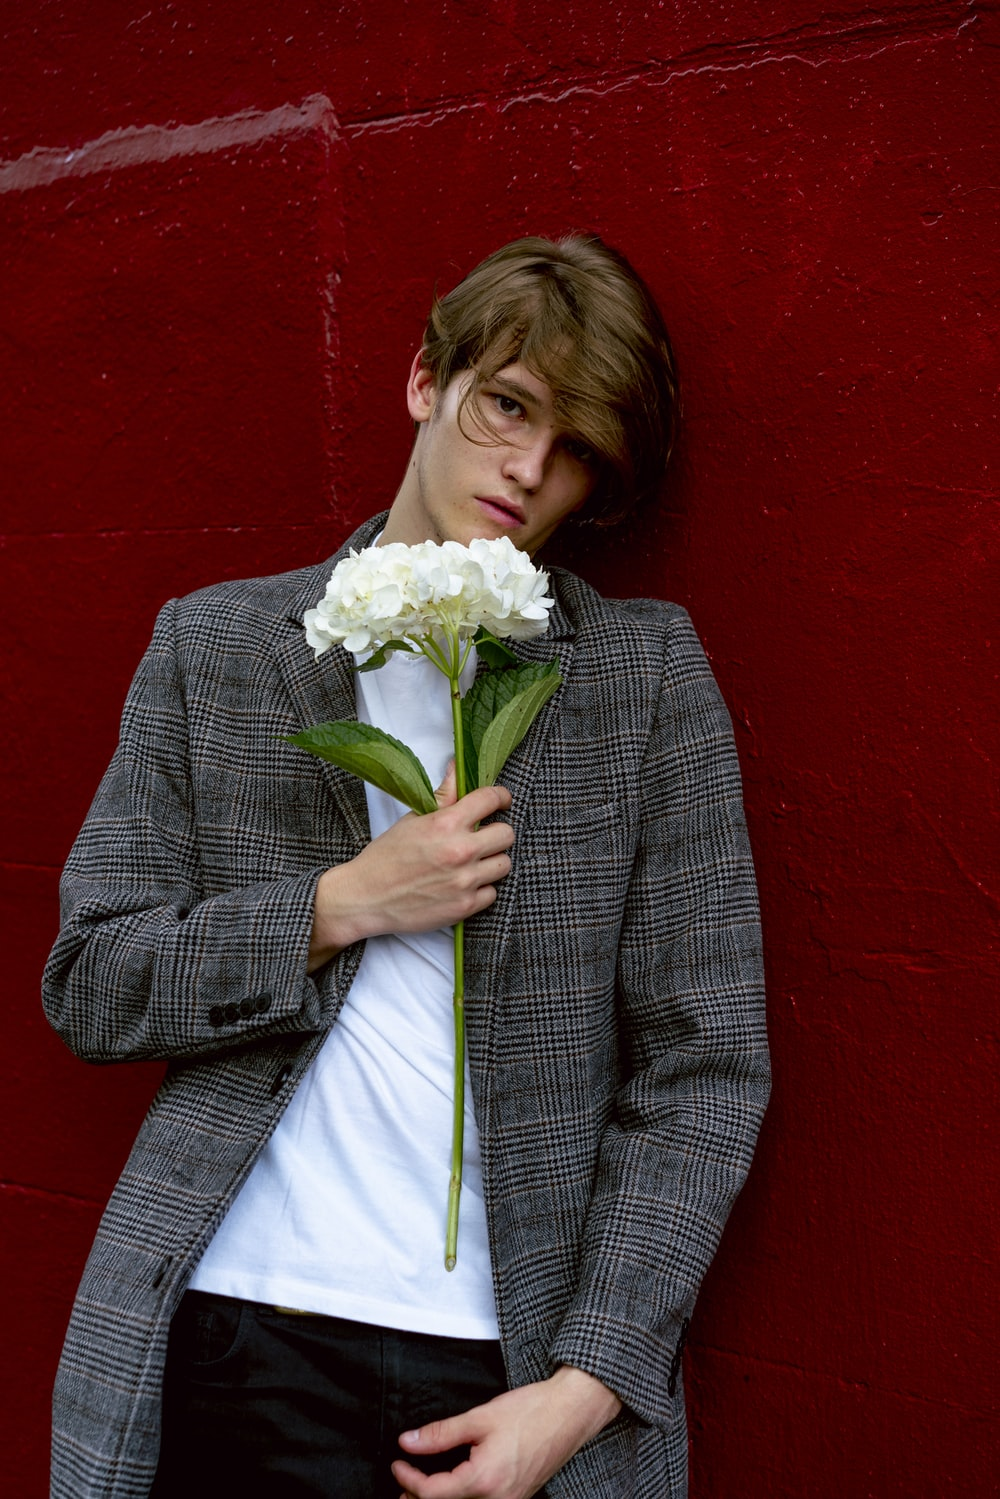 man wearing gray trench coat holding white flowers